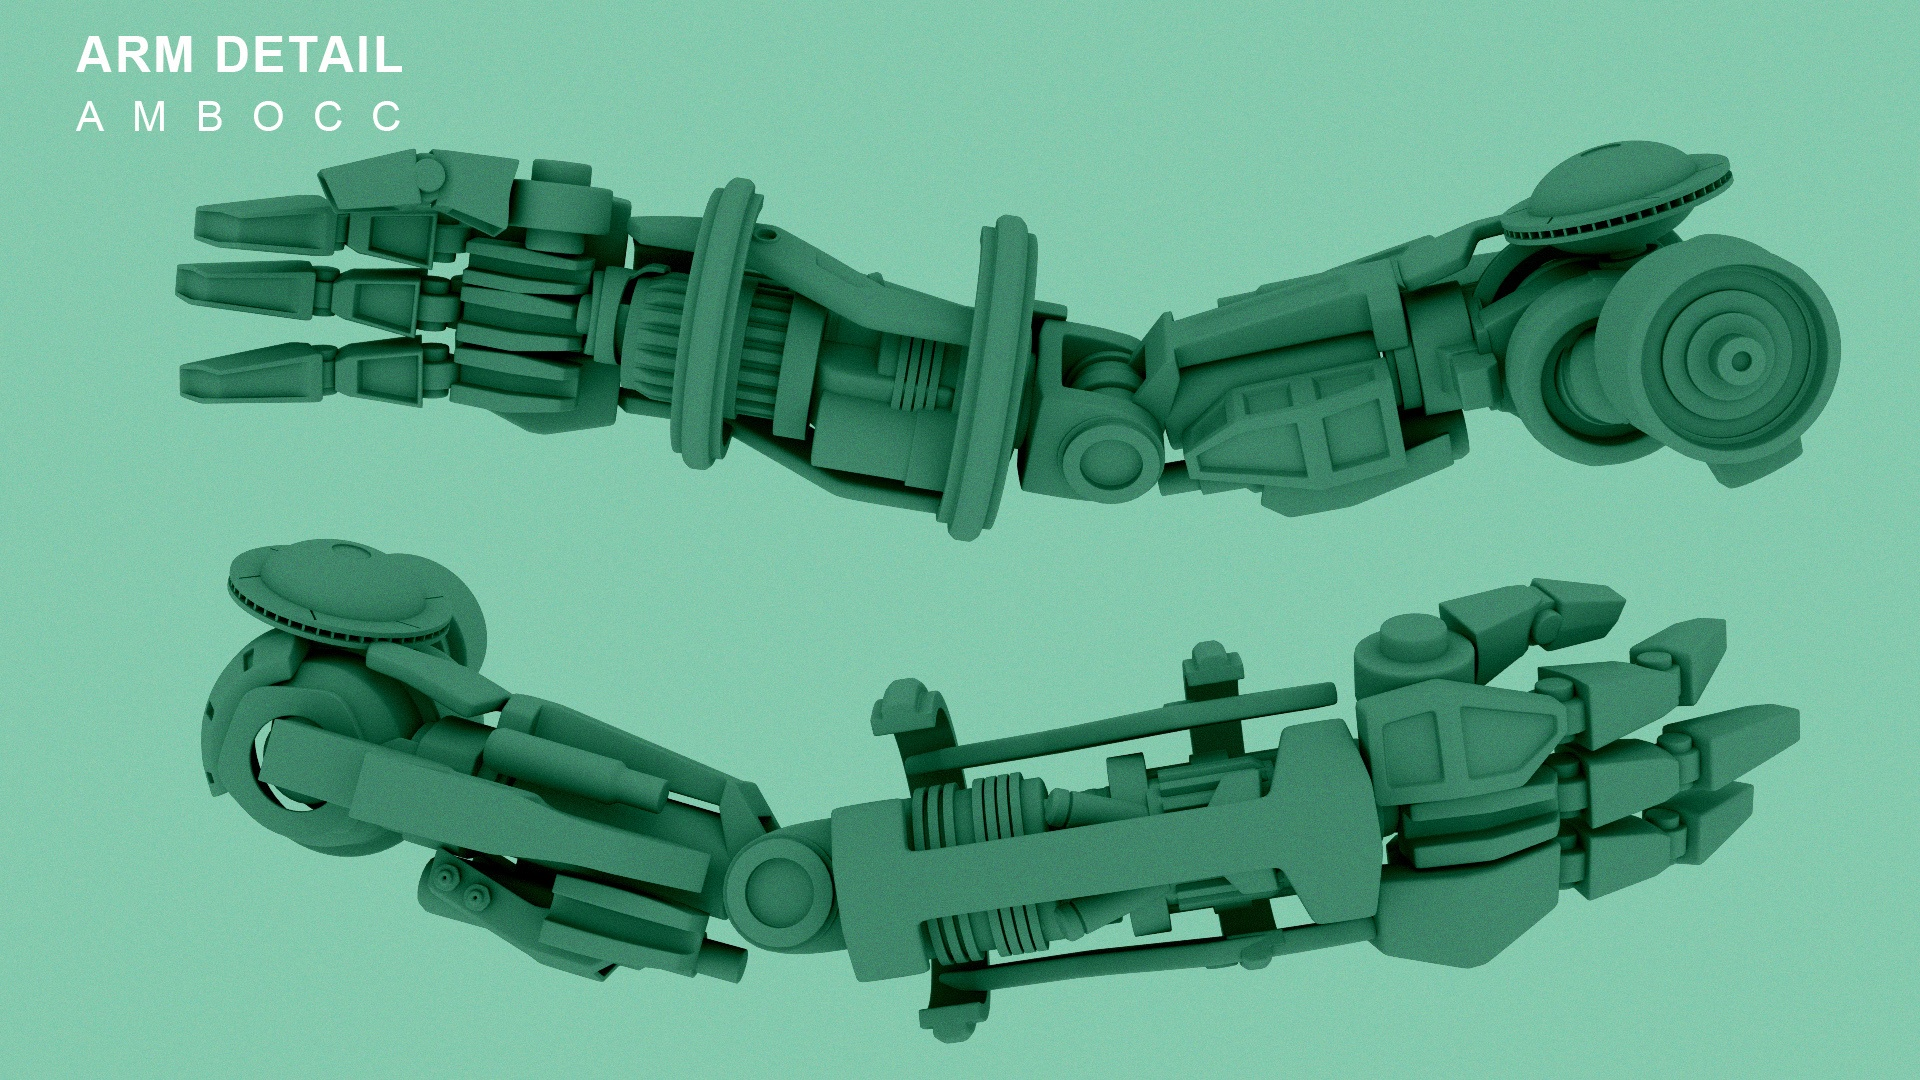 CGI ambocc render of a robot arm on a green background